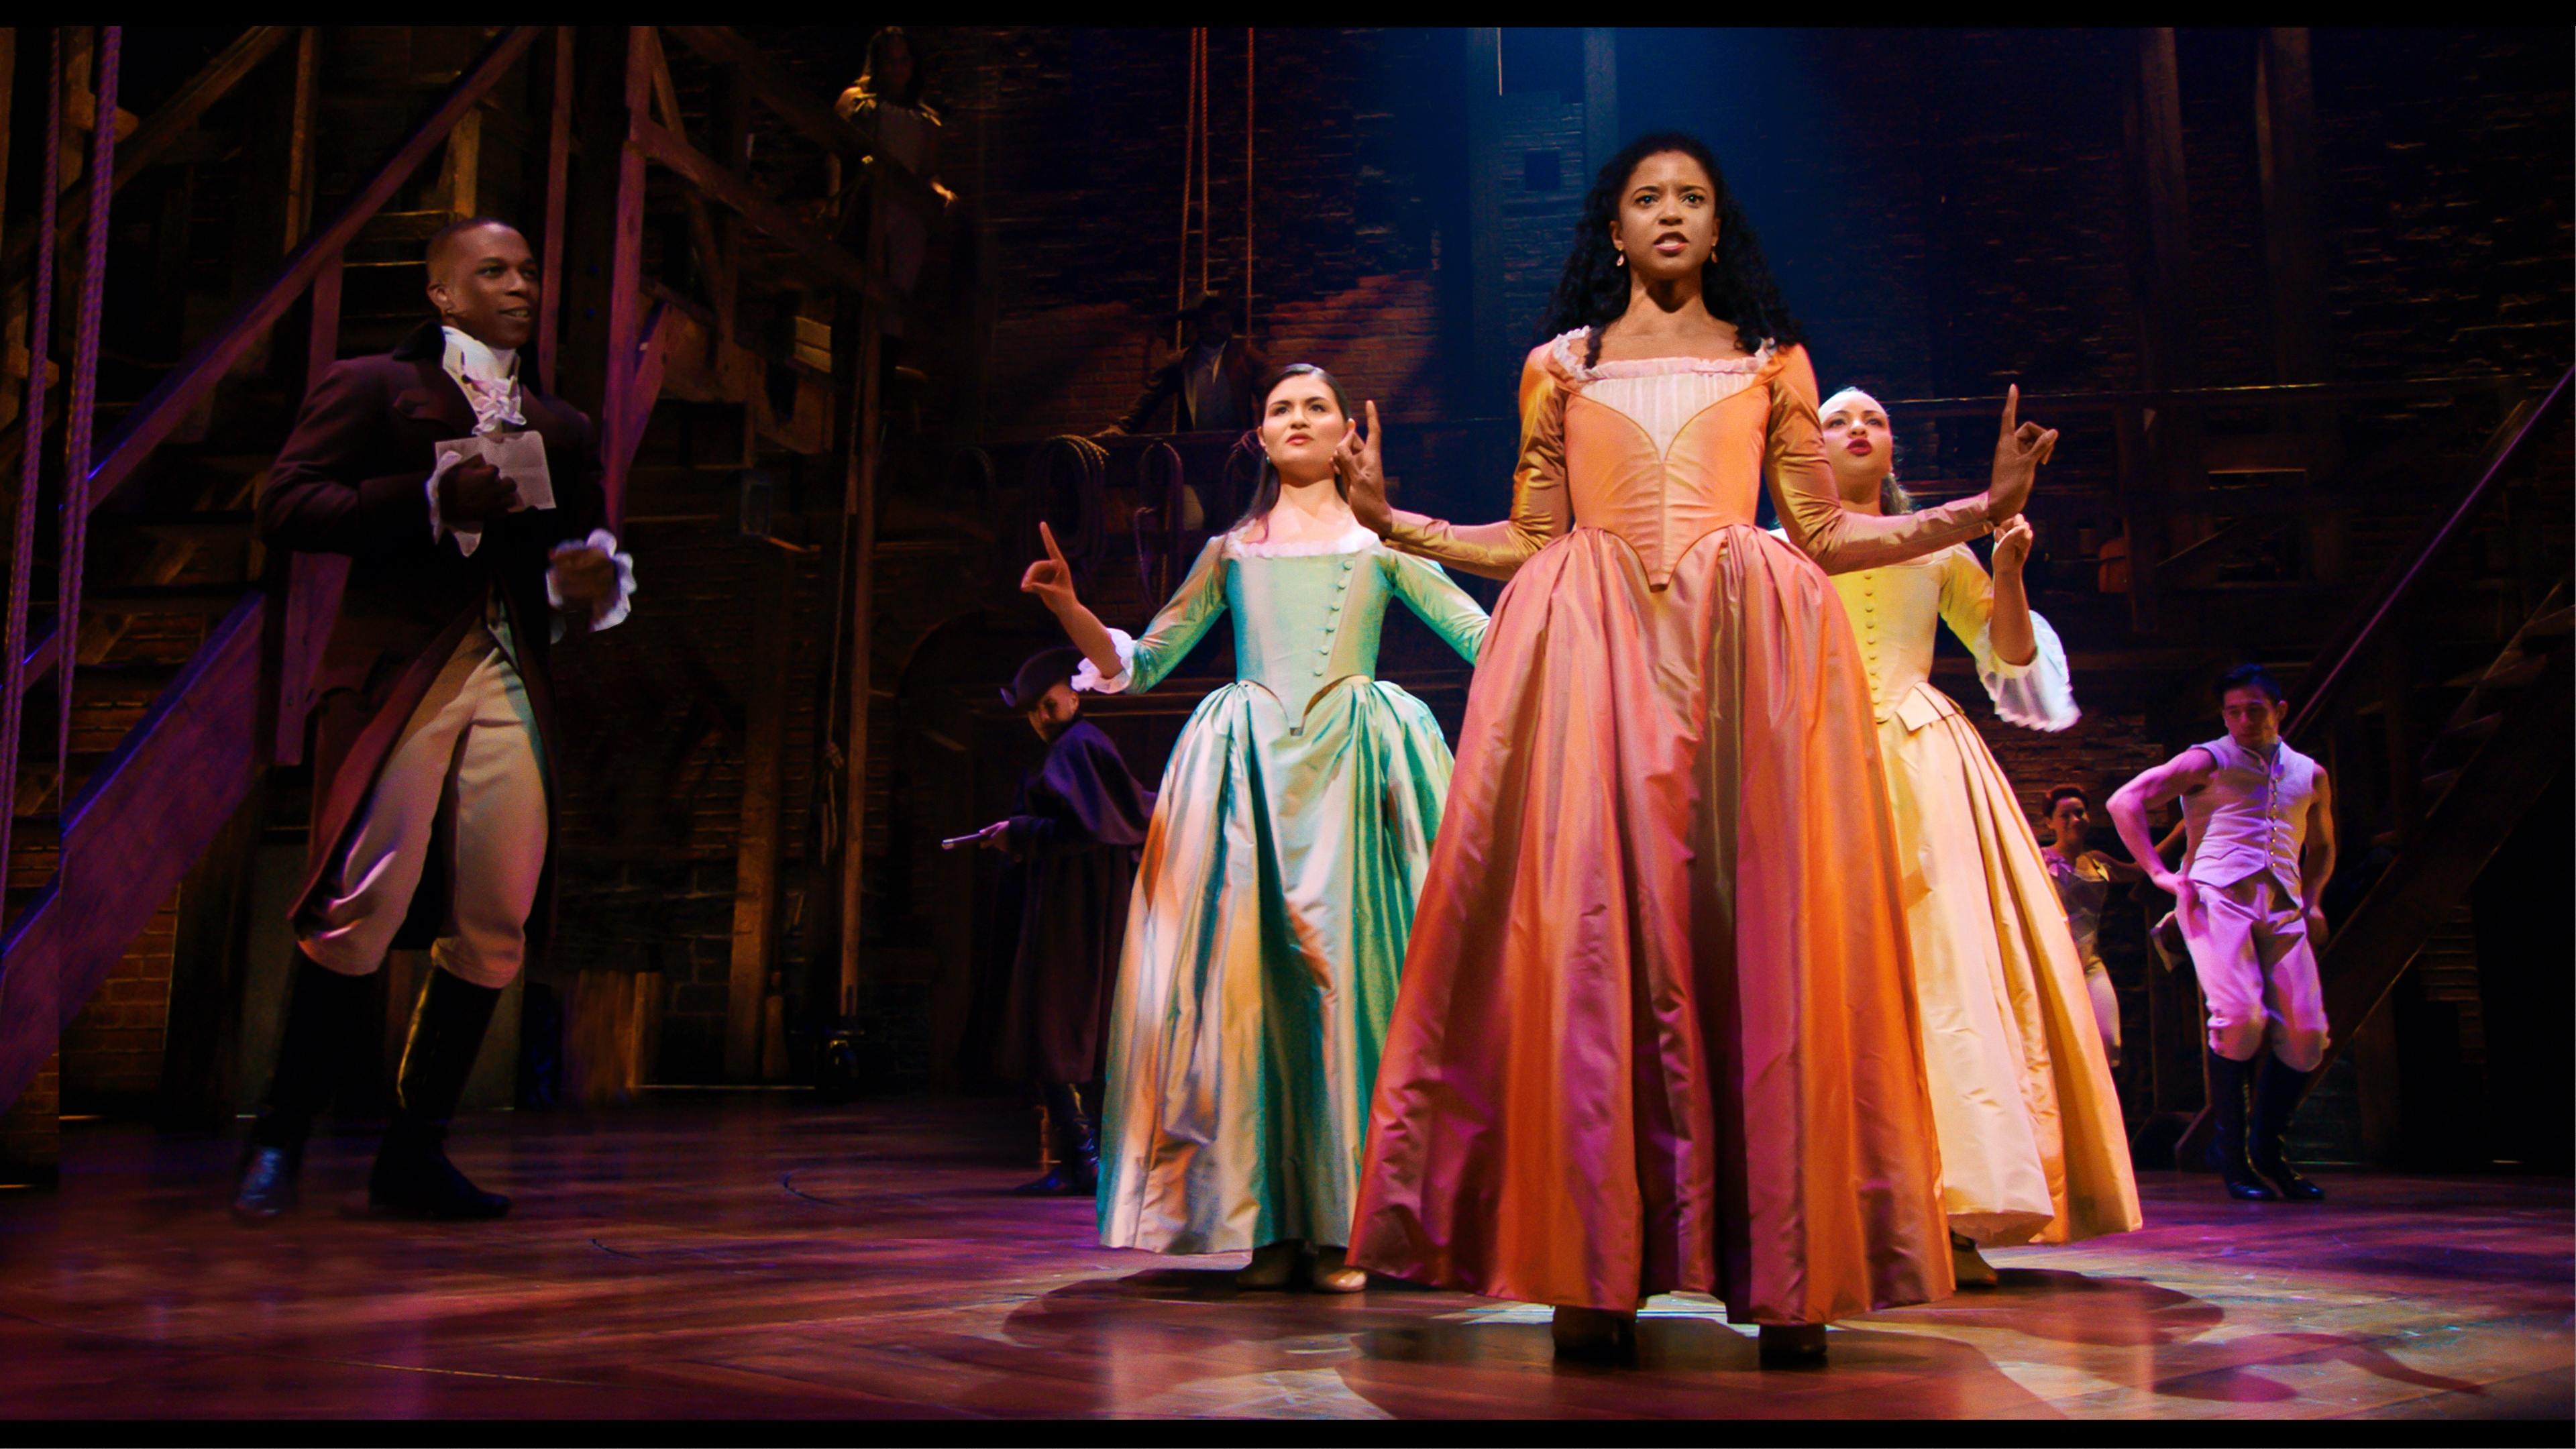 Phillipa Soo is Eliza Hamilton, Renée Elise Goldsberry is Angelica Schuyler and Jasmine Cephas Jones is Peggy Schuyler in HAMILTON, the filmed version of the original Broadway production.